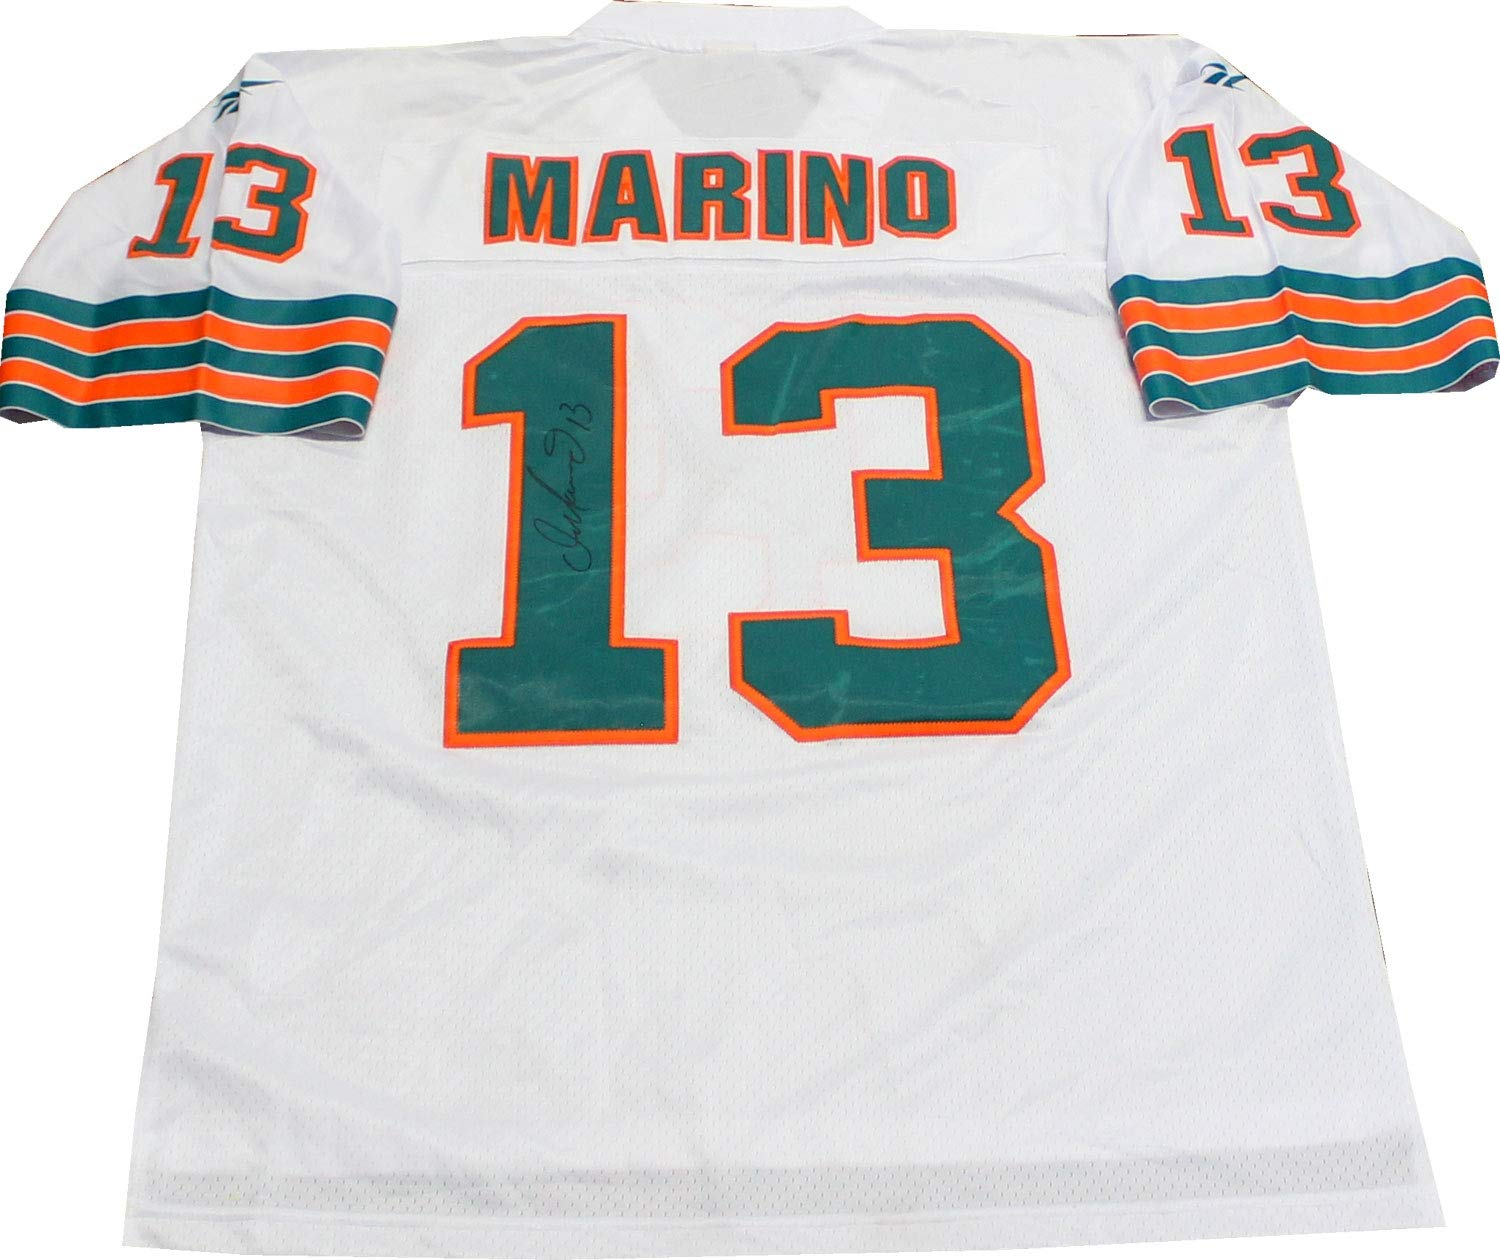 reputable site 14d06 364c1 Dan Marino Autographed Miami Dolphins Throwback Jersey at ...